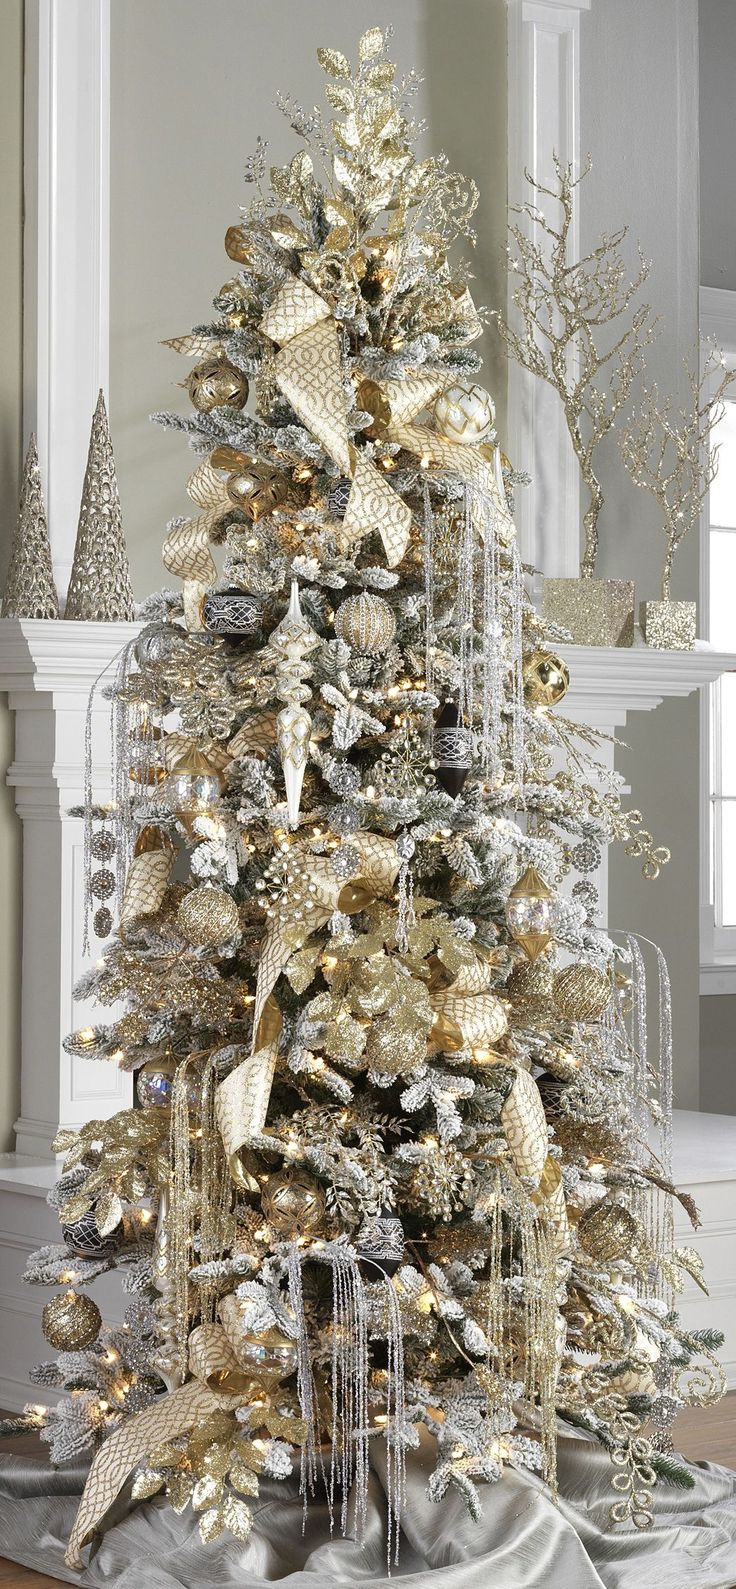 1870 best christmas trees/ornaments images on pinterest | colors